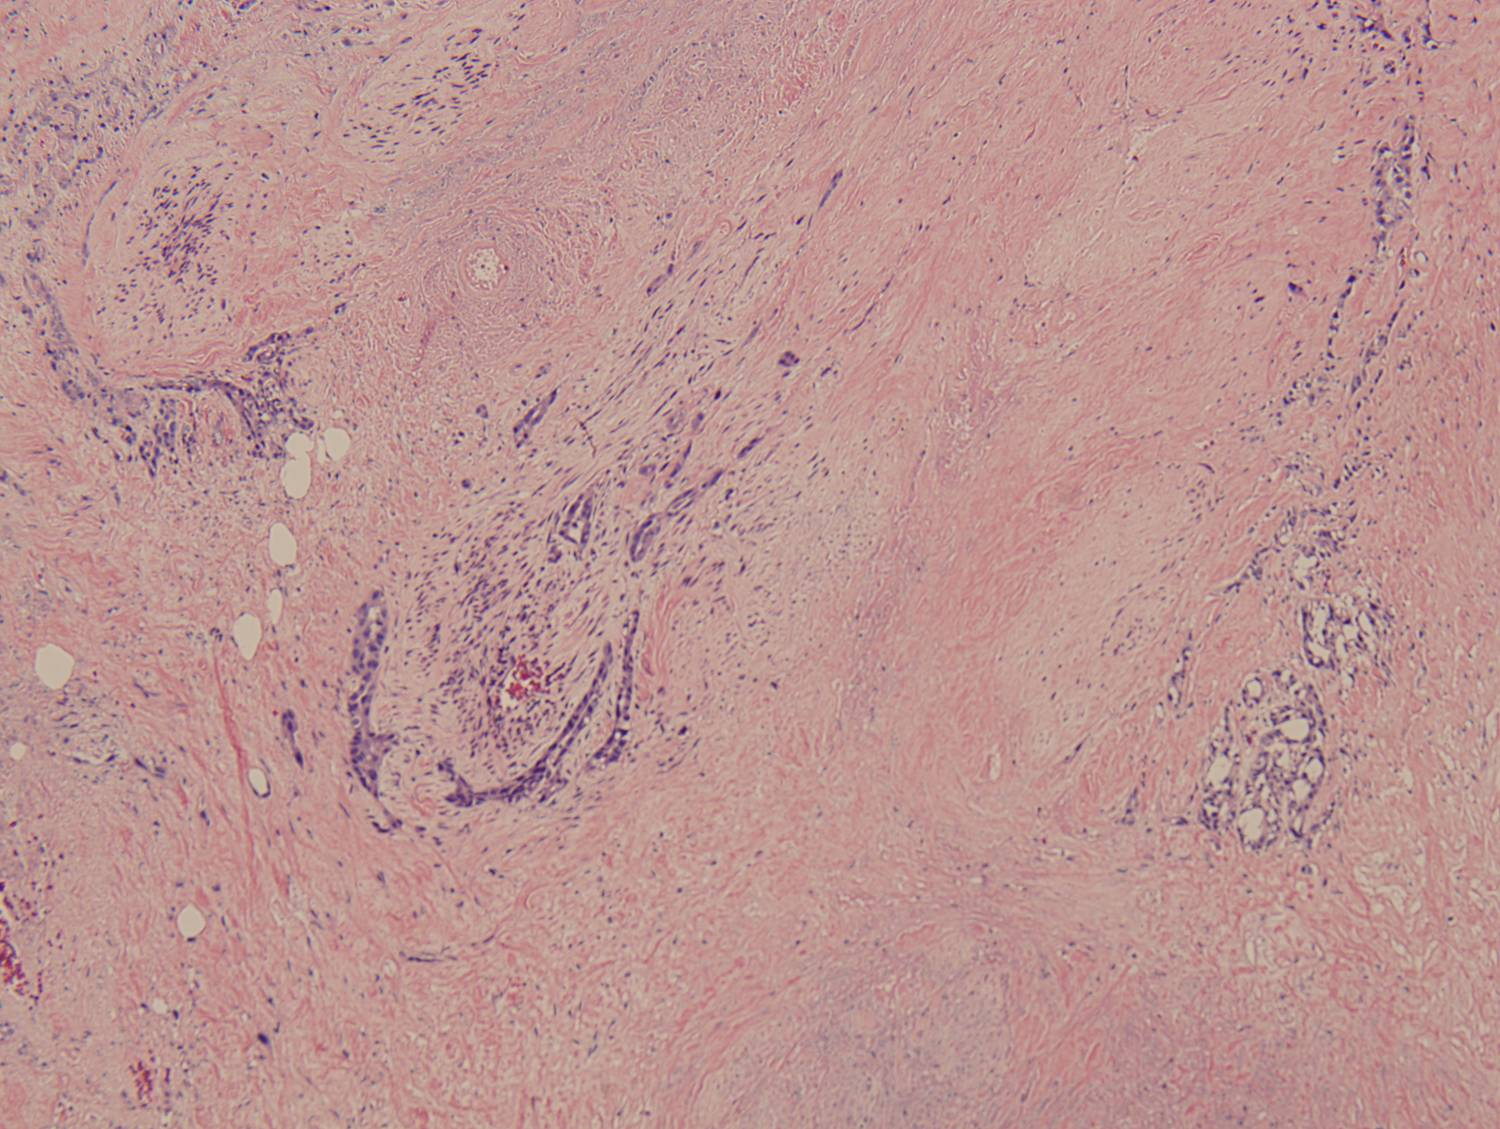 Figure 4: Low-power view of an invasive glandular component with a surrounding desmoplastic response